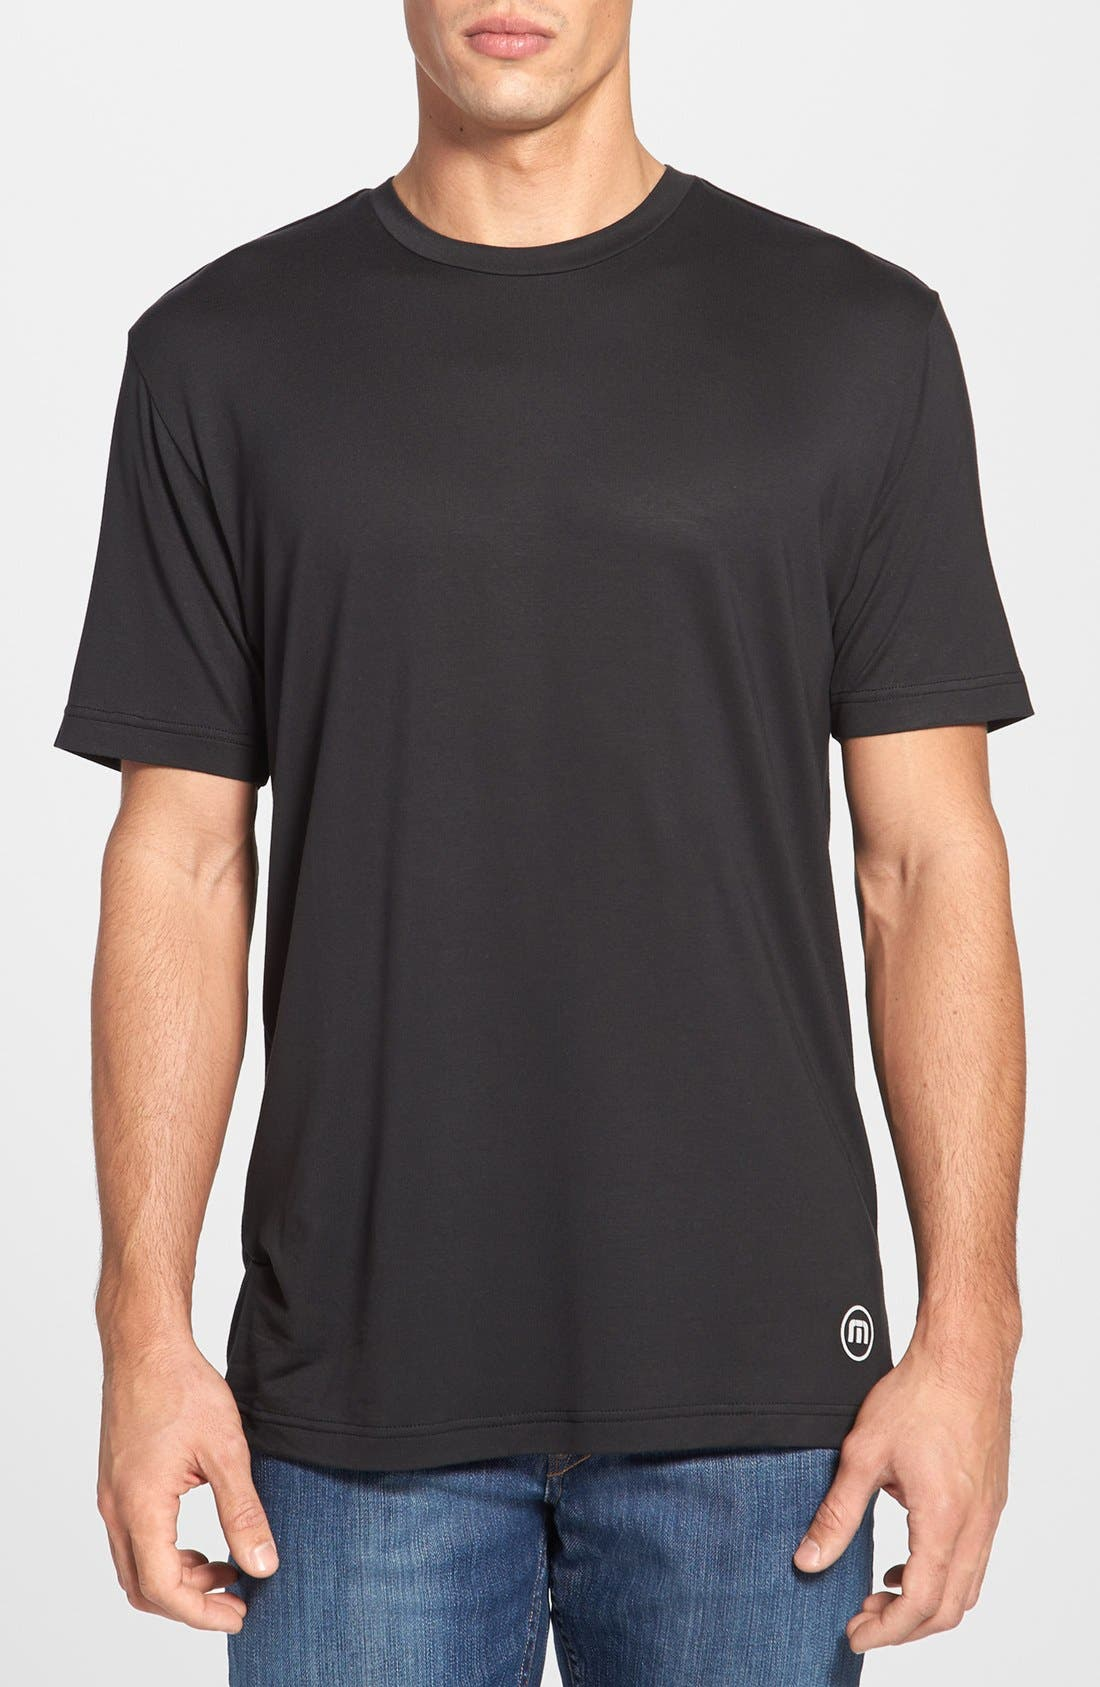 Alternate Image 1 Selected - Travis Mathew 'Upshall' Trim Fit T-Shirt